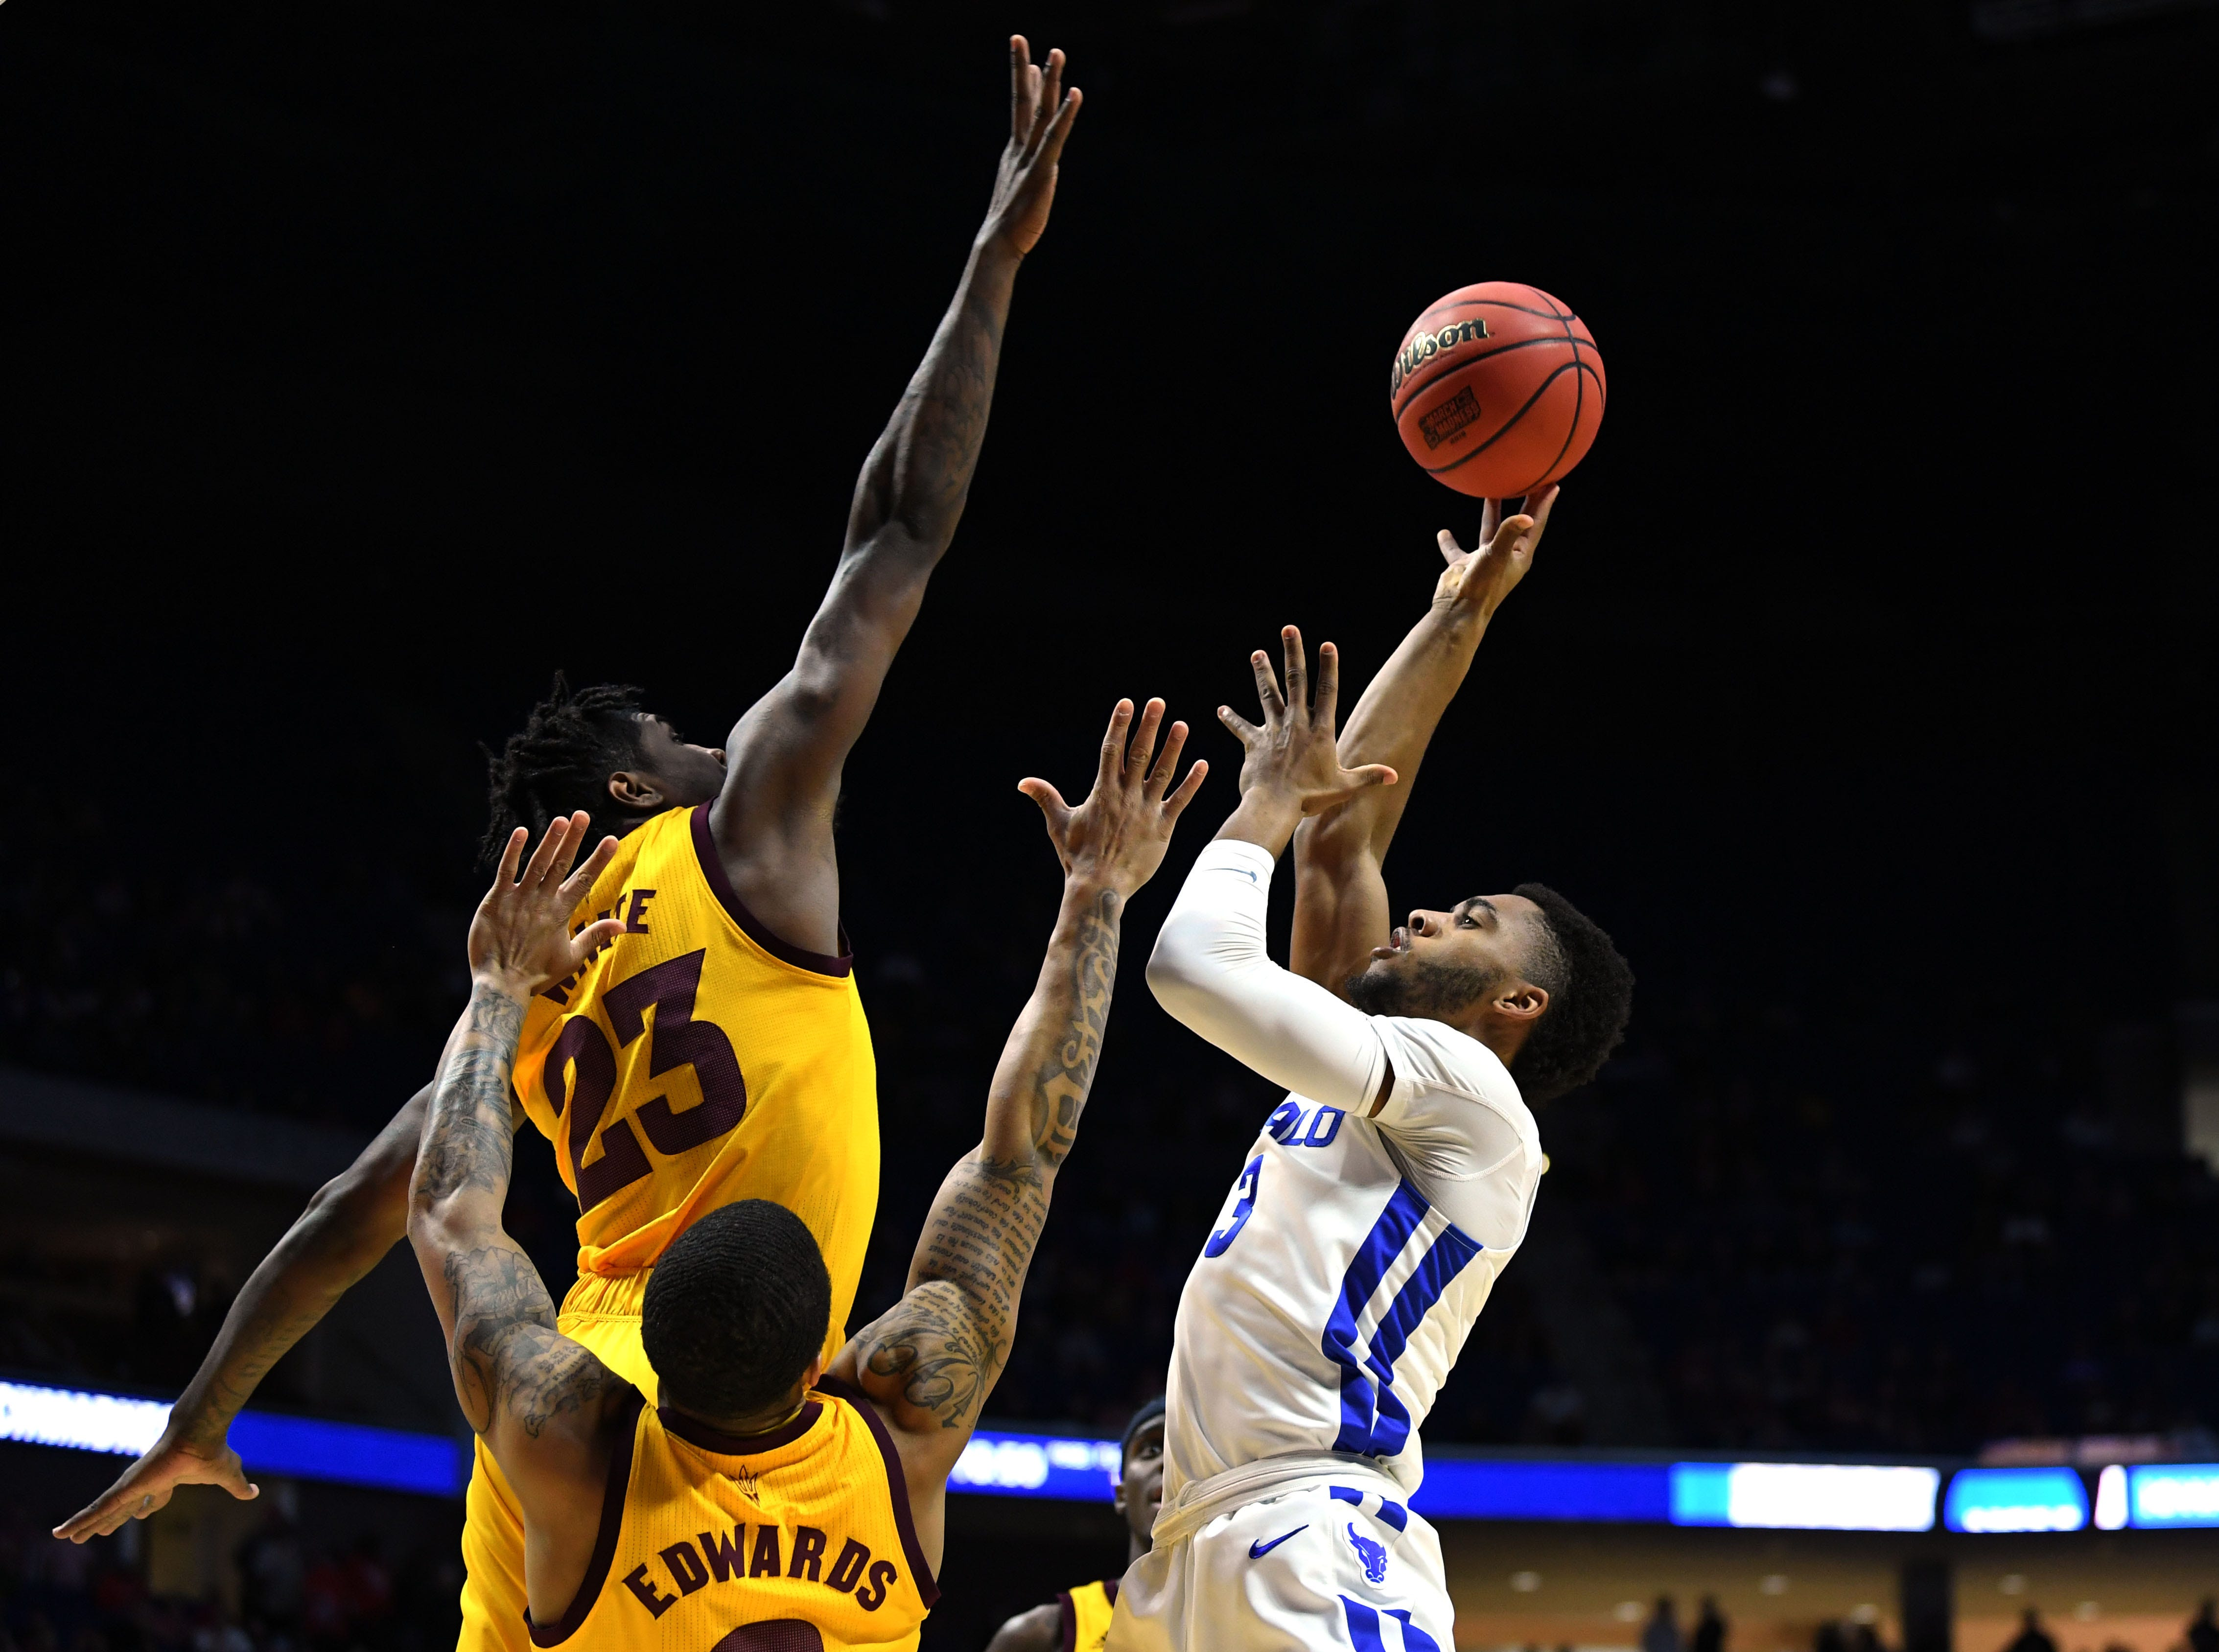 TULSA, OKLAHOMA - MARCH 22:  Jayvon Graves #3 of the Buffalo Bulls attempts a shot over Romello White #23 and Rob Edwards #2 of the Arizona State Sun Devils during the first half of the first round game of the 2019 NCAA Men's Basketball Tournament at BOK Center on March 22, 2019 in Tulsa, Oklahoma. (Photo by Harry How/Getty Images)